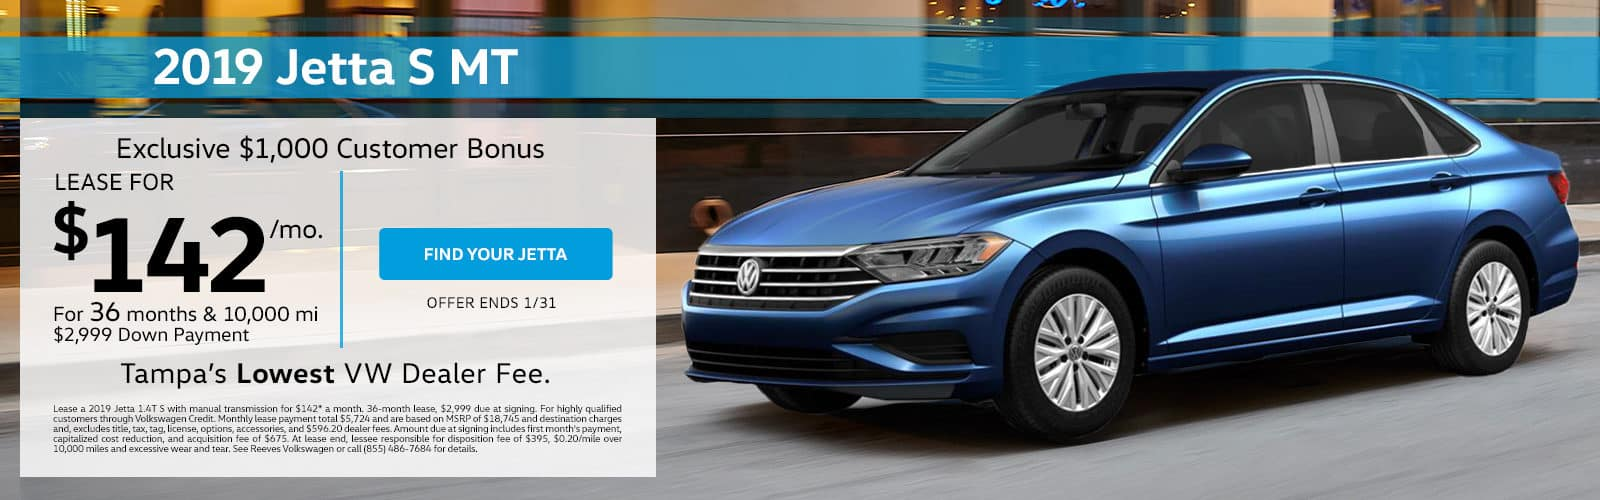 January Jetta Lease Offer